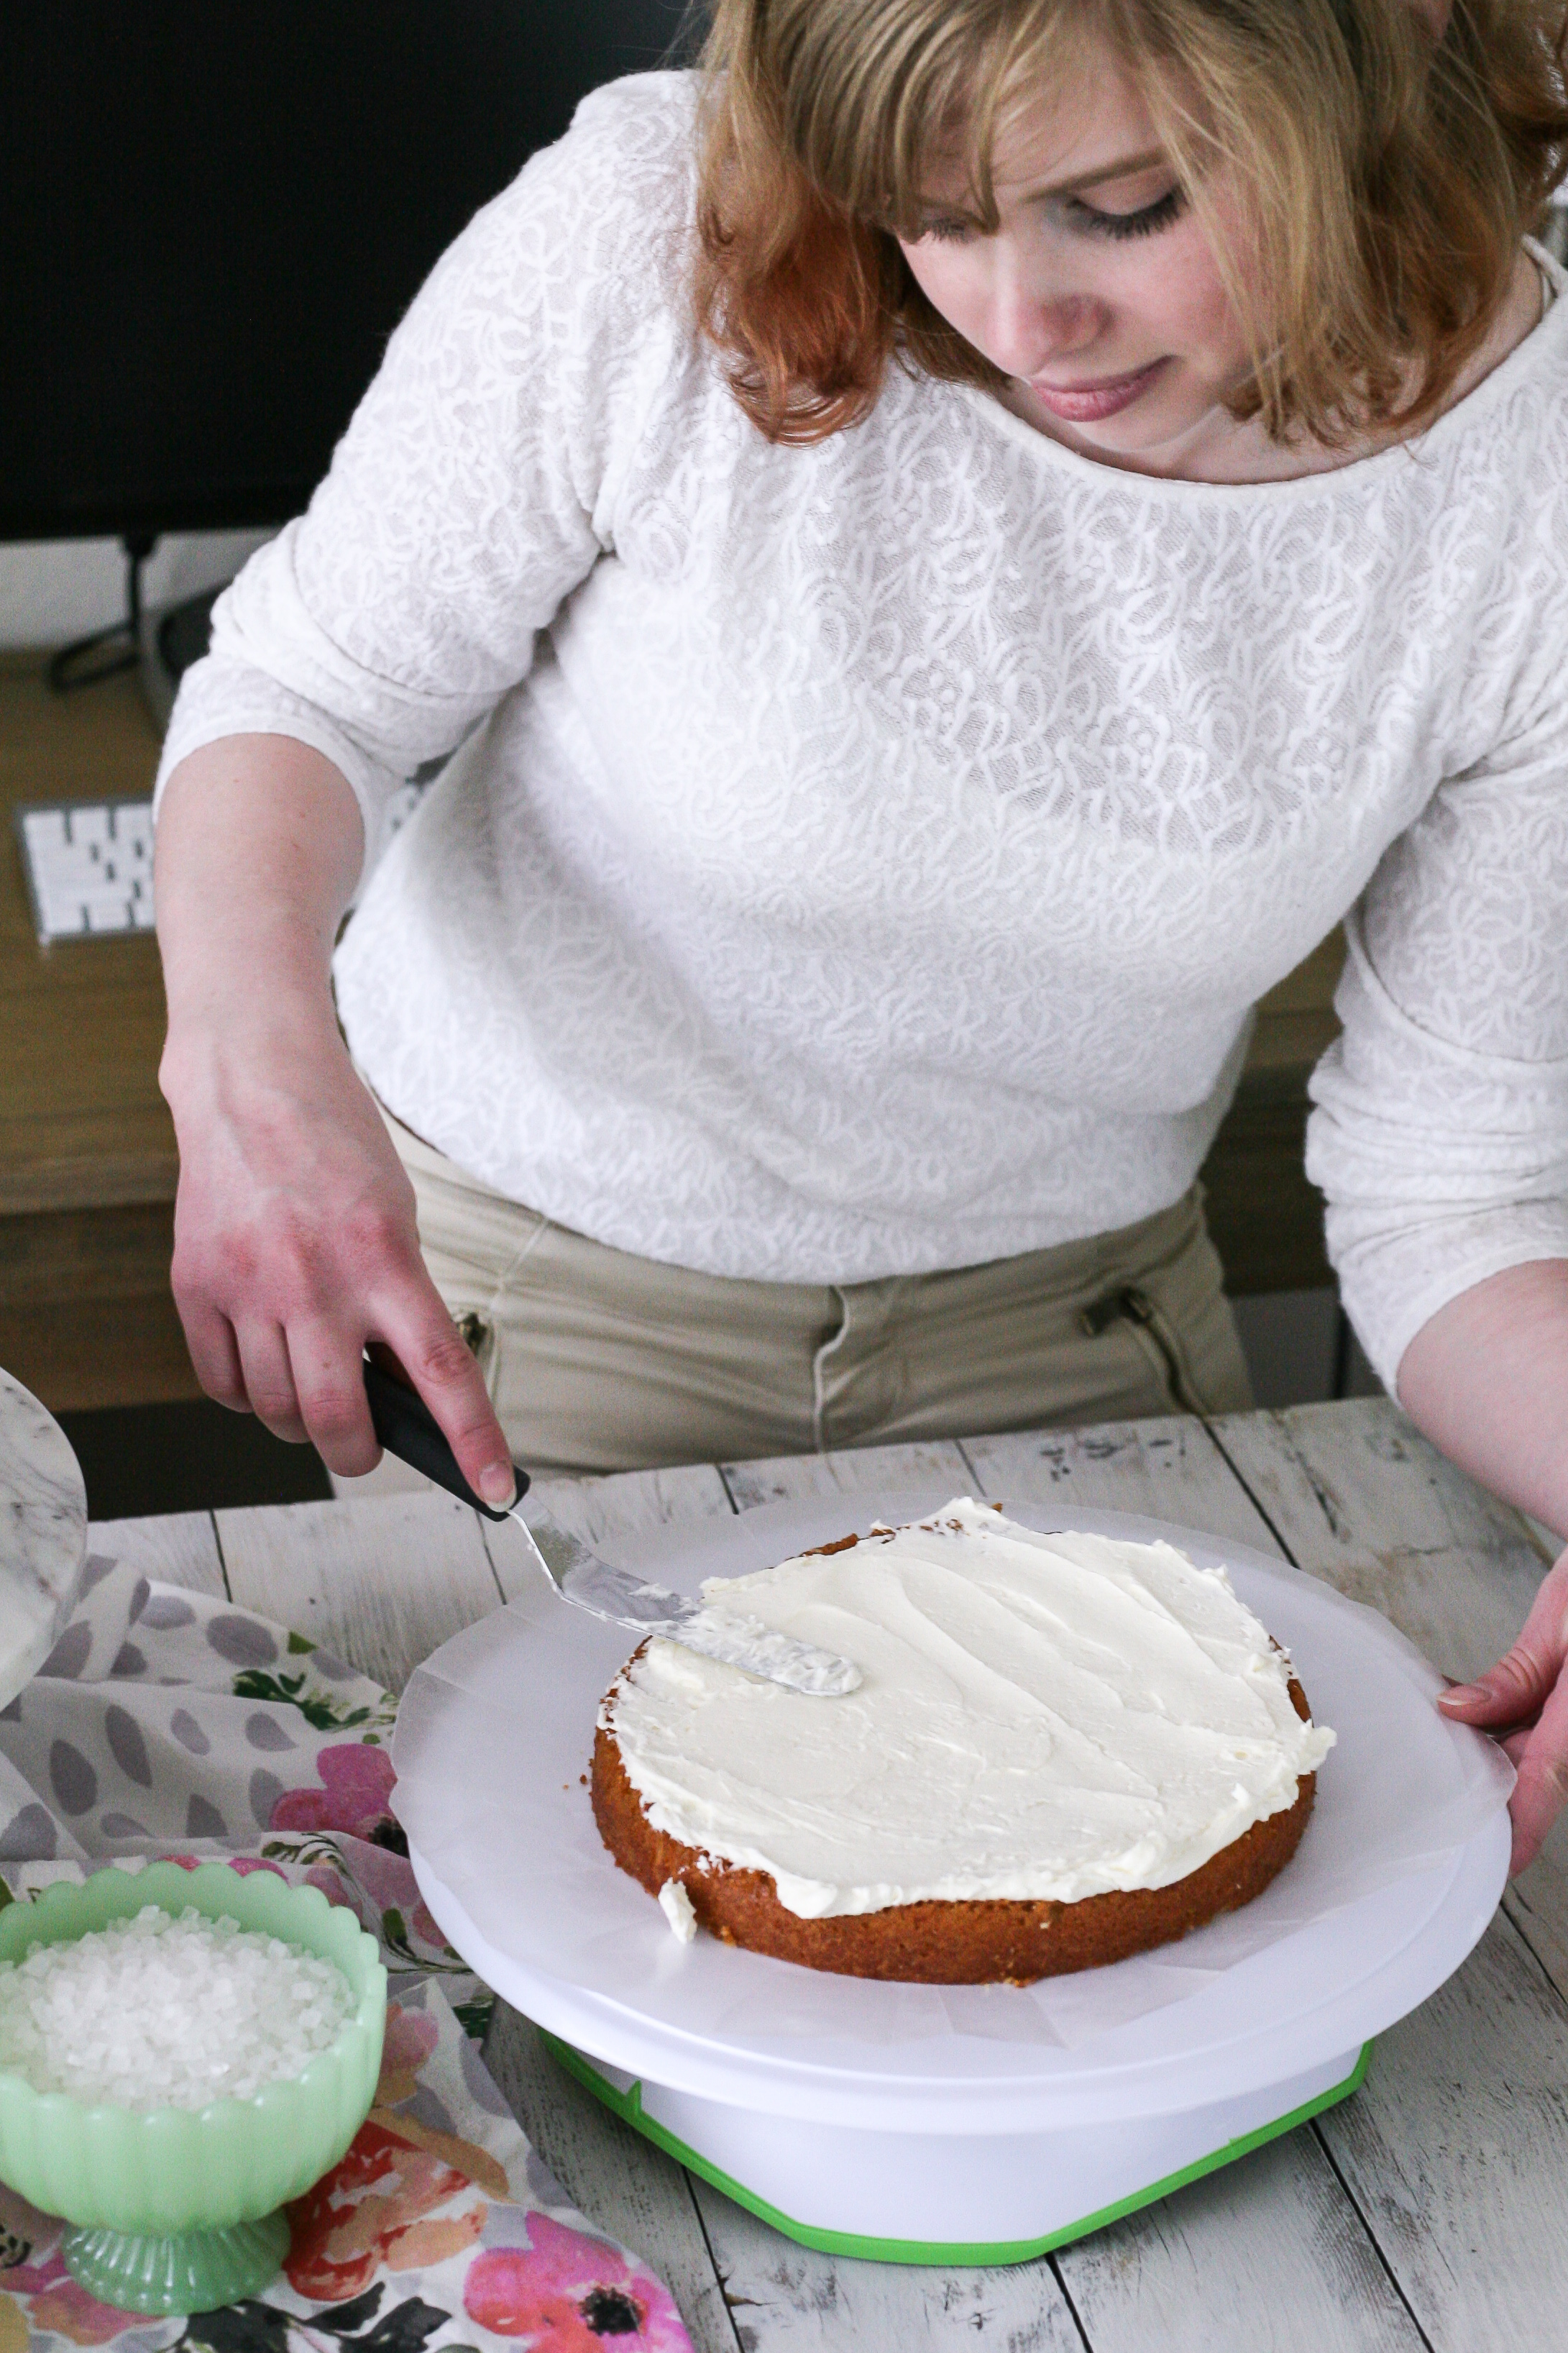 An approachable, step-by-step guide to making your own gorgeous geode cake at home! [ www.pedanticfoodie.com ]